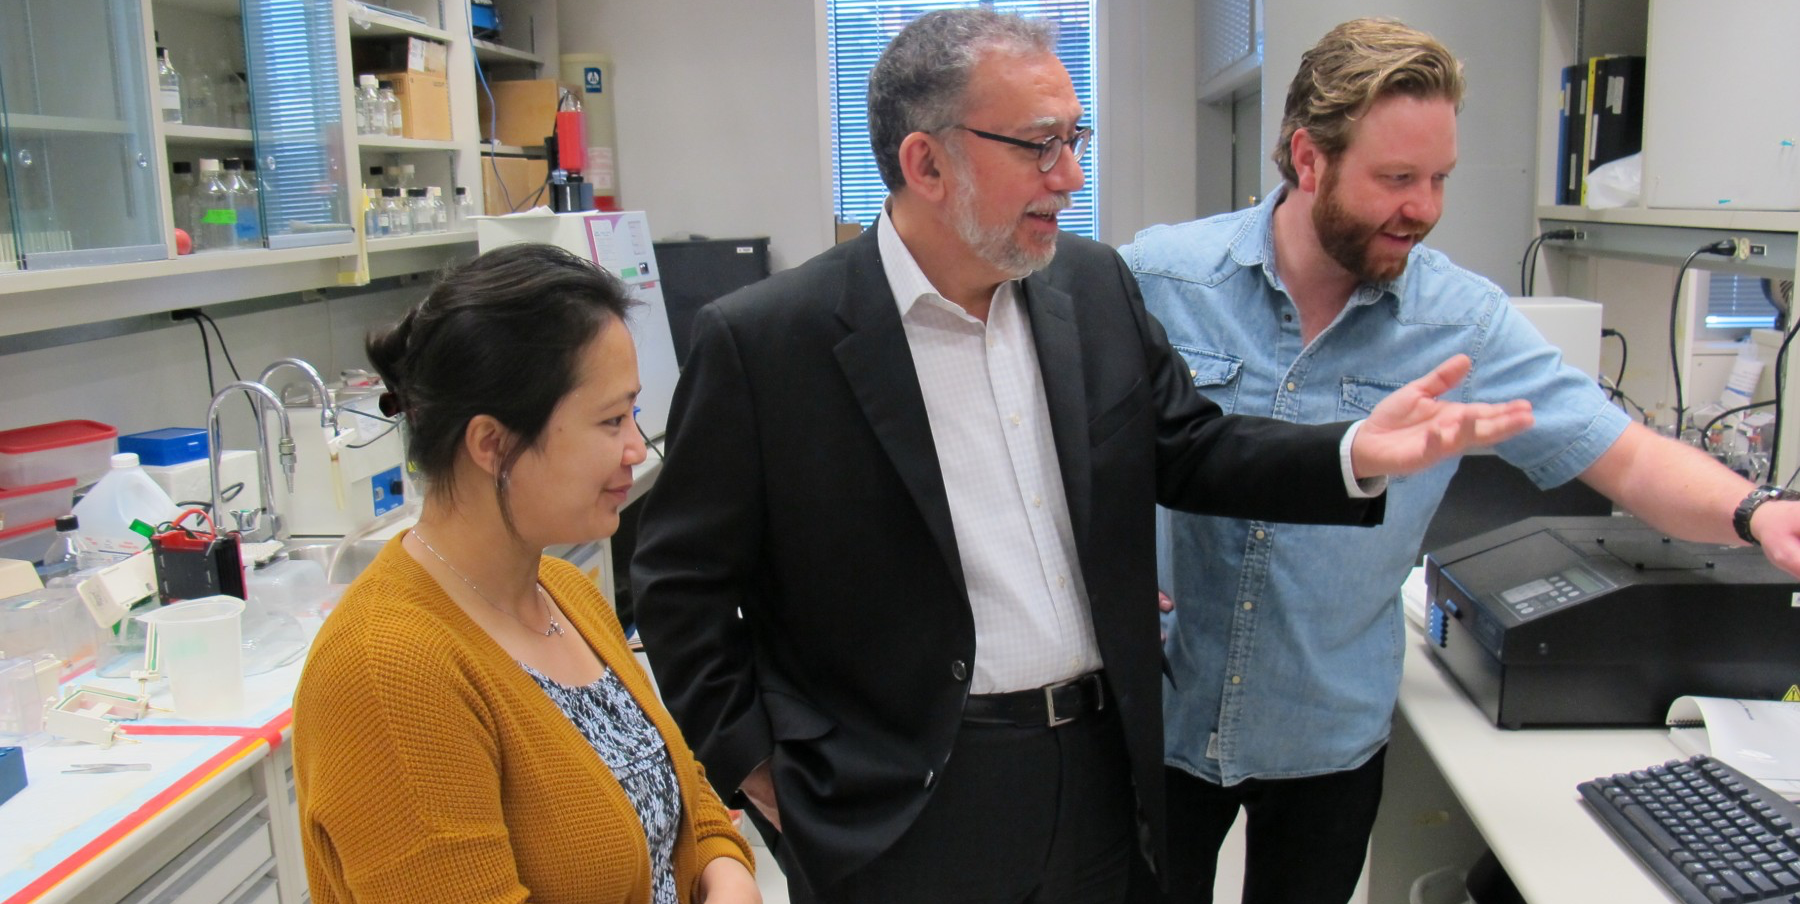 Harissios Vliagoftis speaks with researchers in his lab.